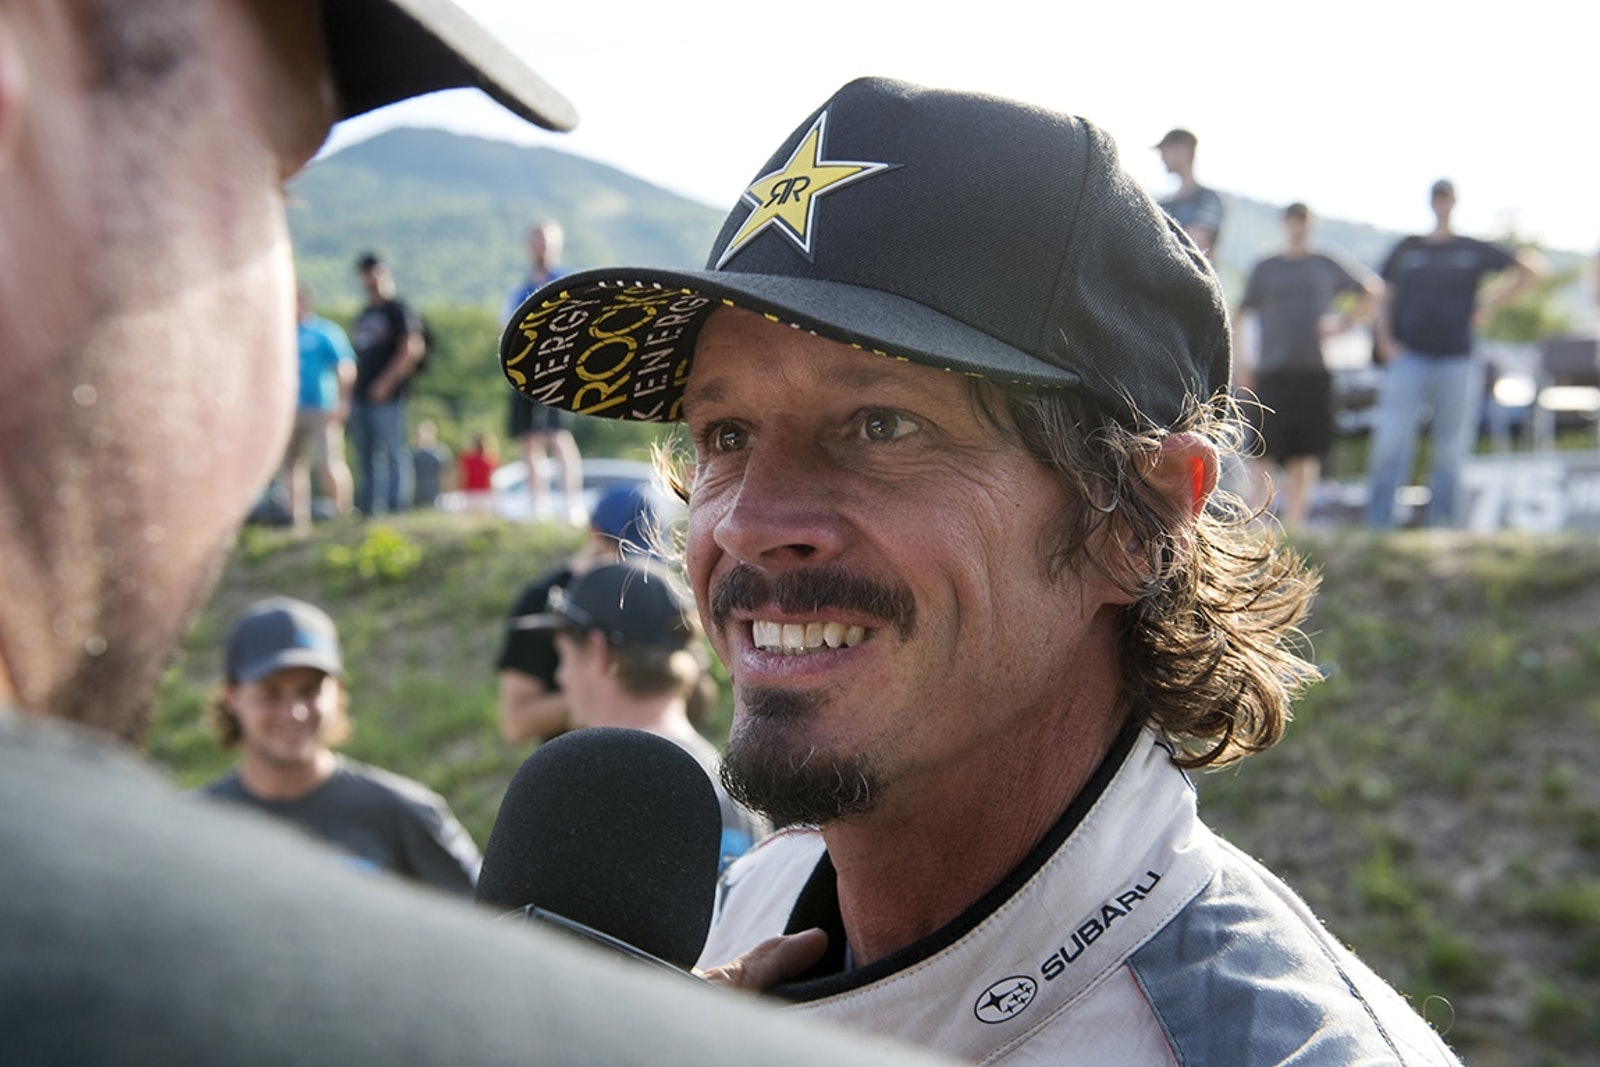 Bucky Lasek is all smiles after a strong showing at New England Forest Rally